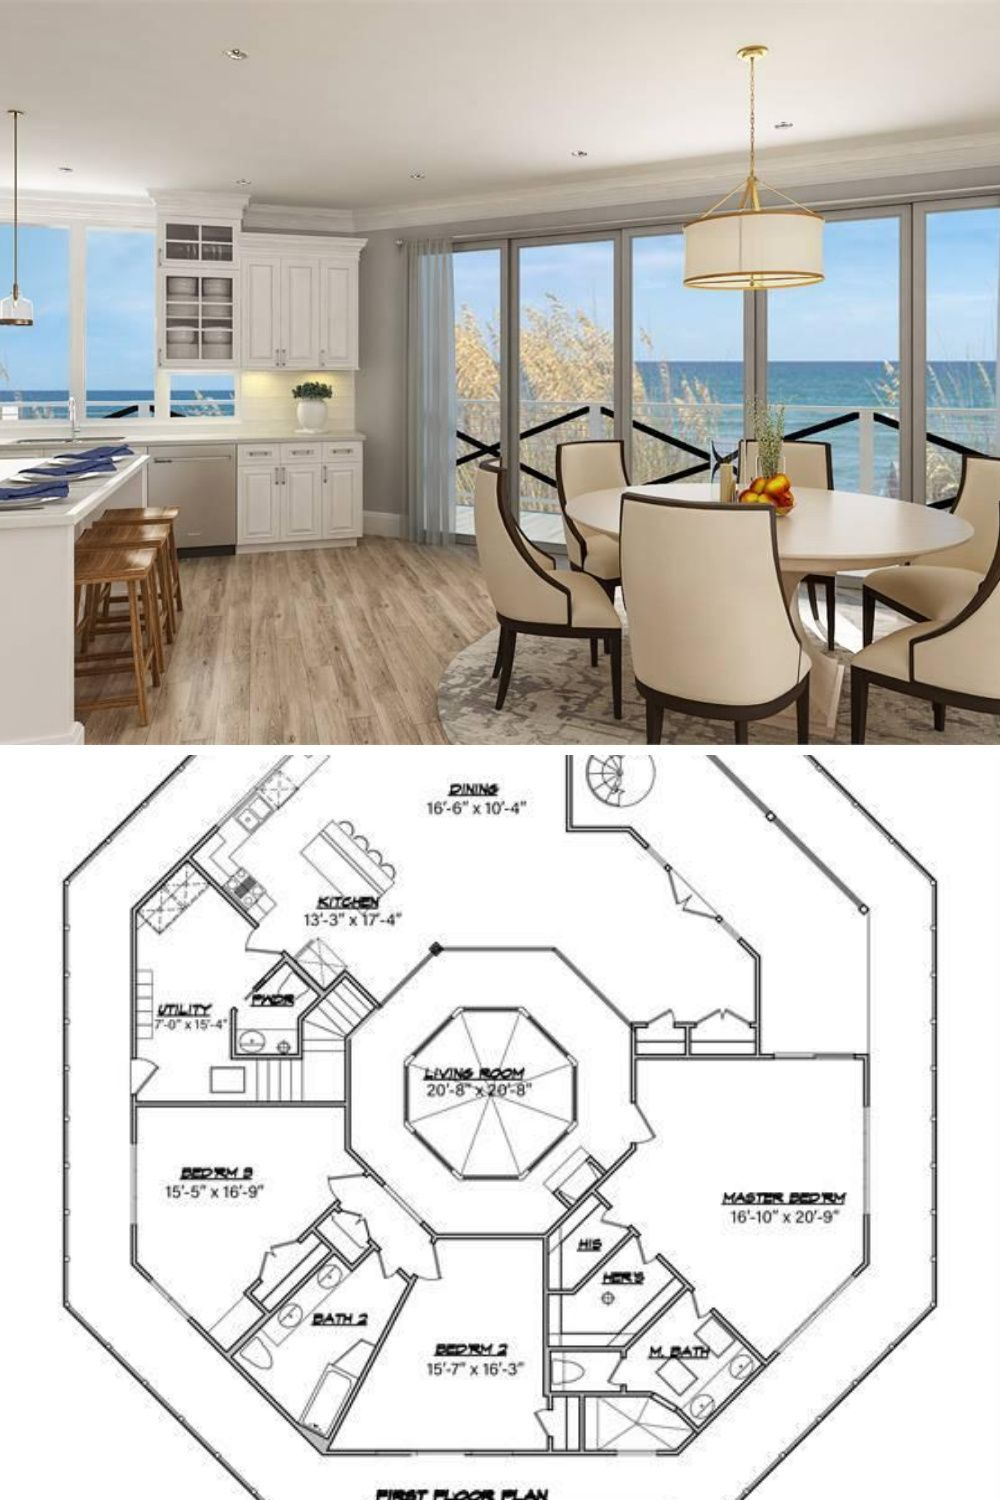 3 Bedroom 2 Story Modern Octagon House Plan with Full Wrap Around Porch Floor Plan